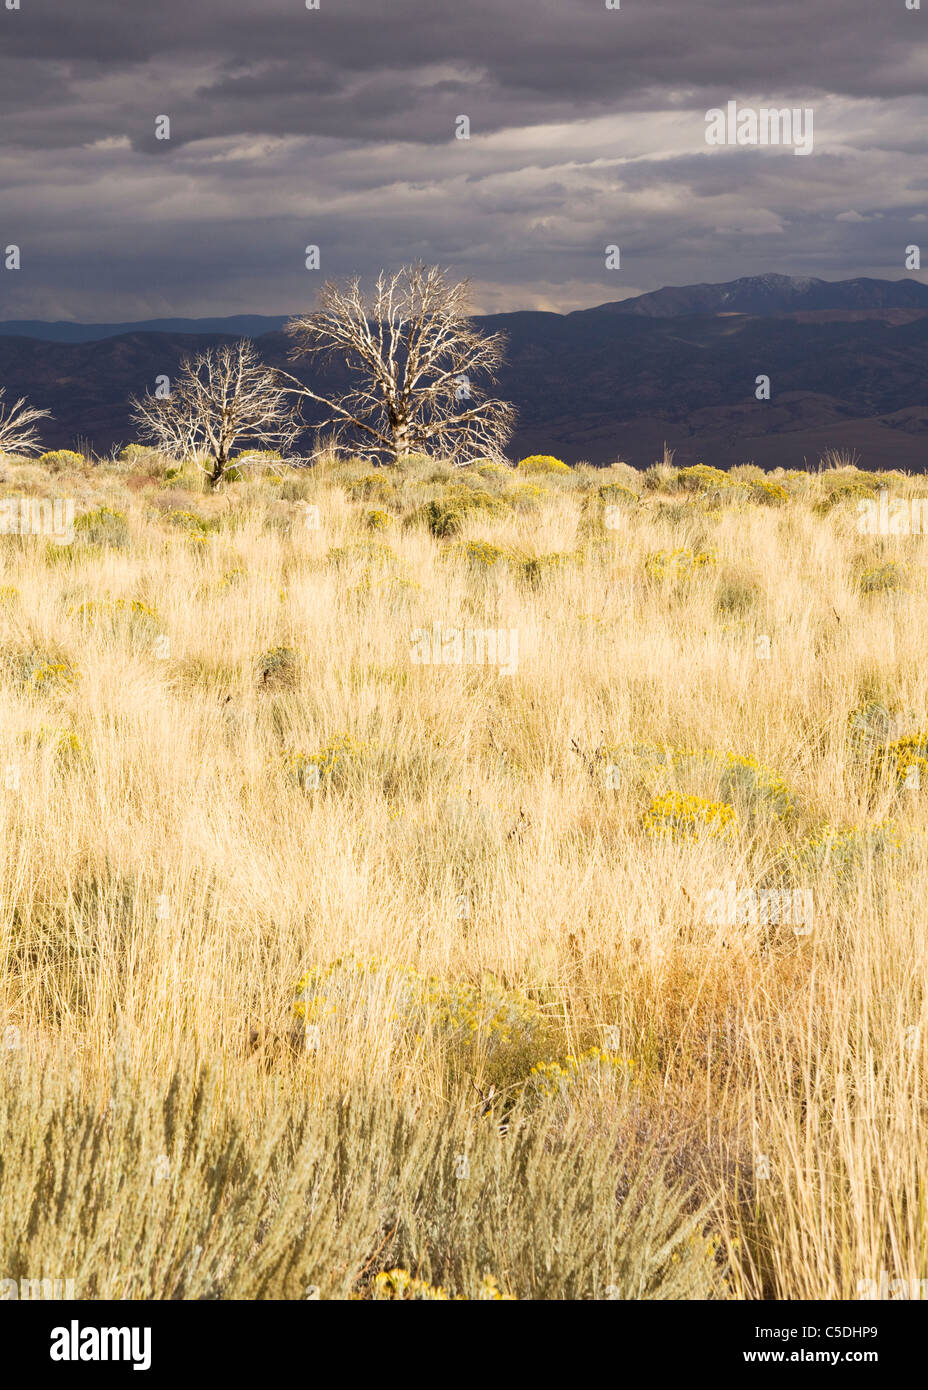 Leafless trees in dry grass field of the California high country - Stock Image